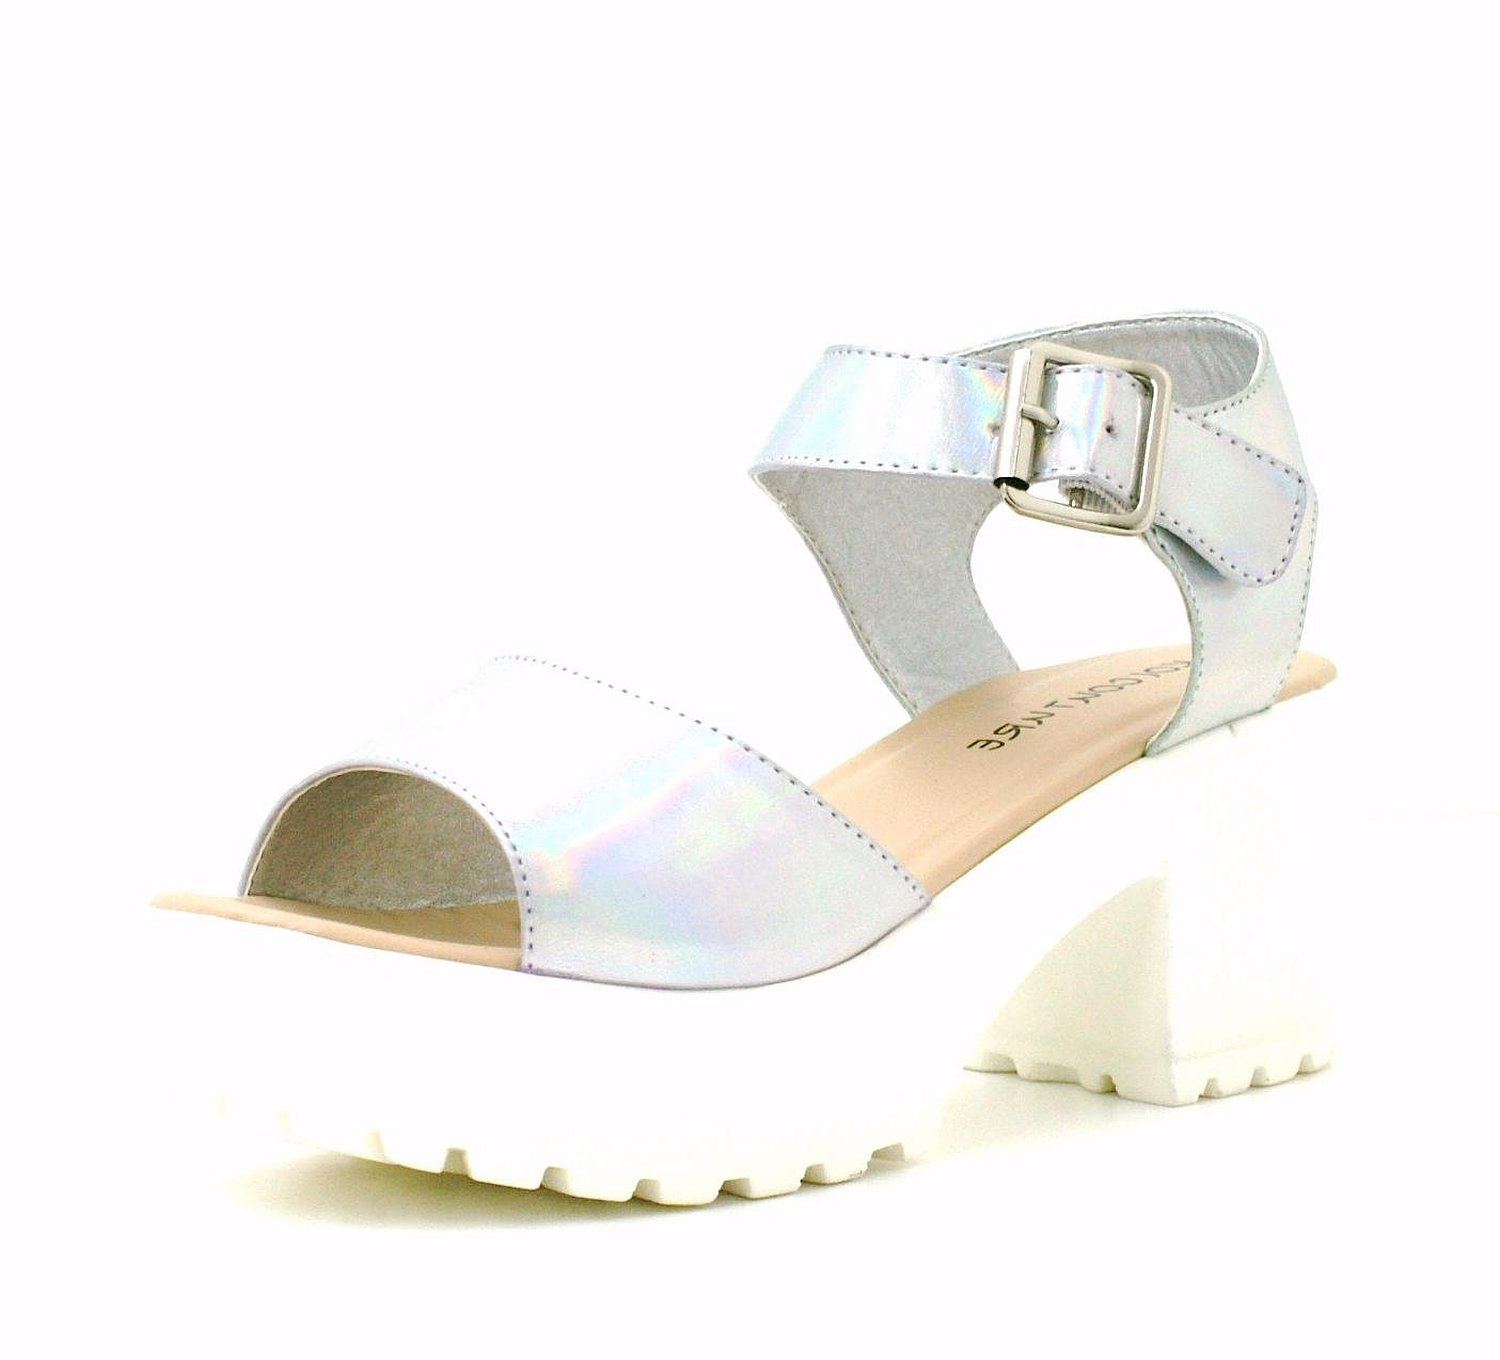 cacbb51c05f Womens Ladies Silver Hologram Strappy Chunky Platform Peeptoe Cleated Sole  Fashion Sandals Shoes - X65 (8